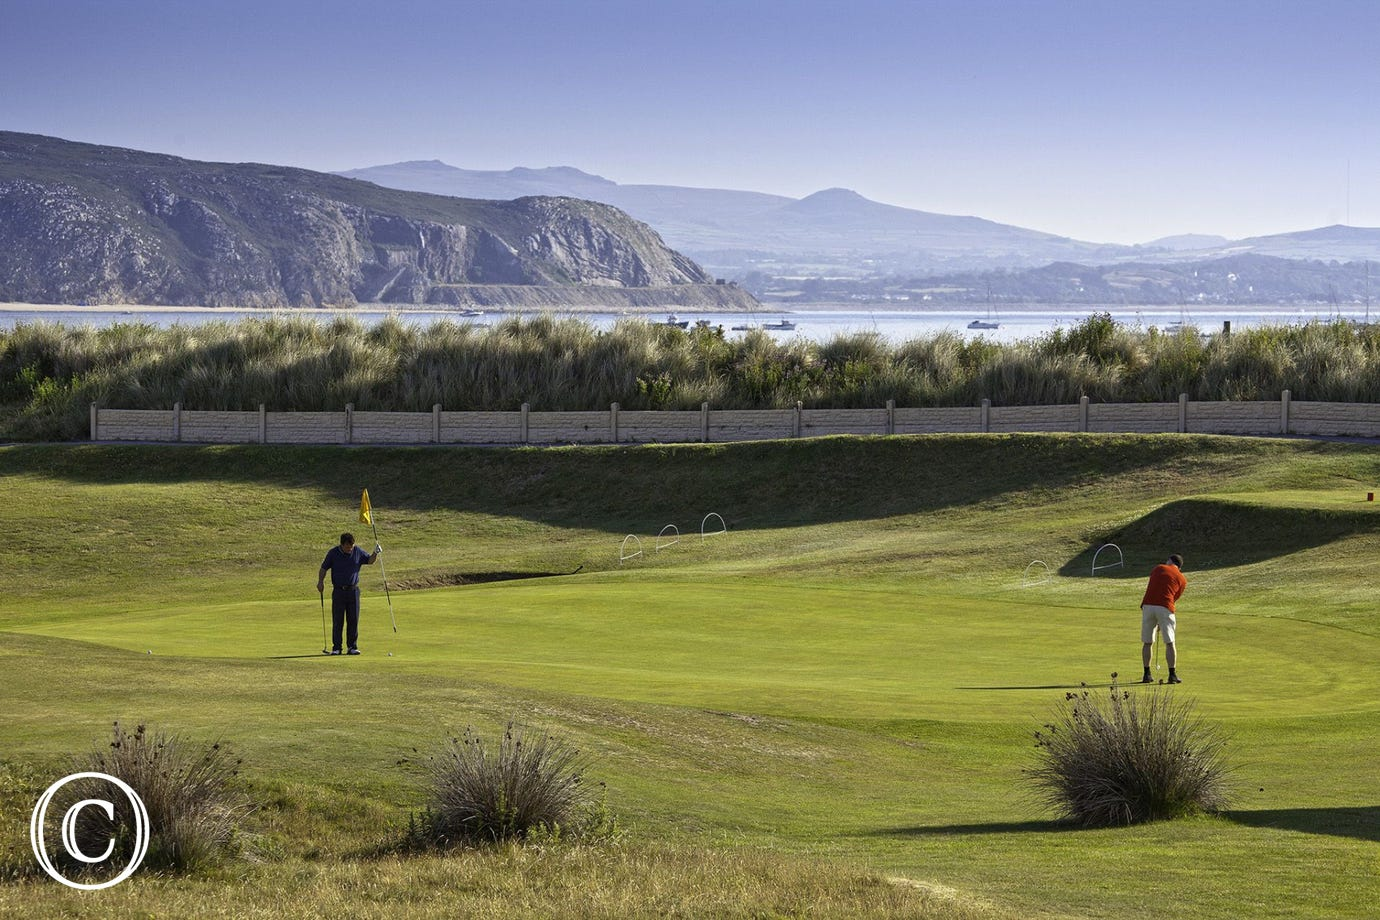 Abersoch Golf Club on the beautiful Llyn Peninsula coast (6.5 miles)